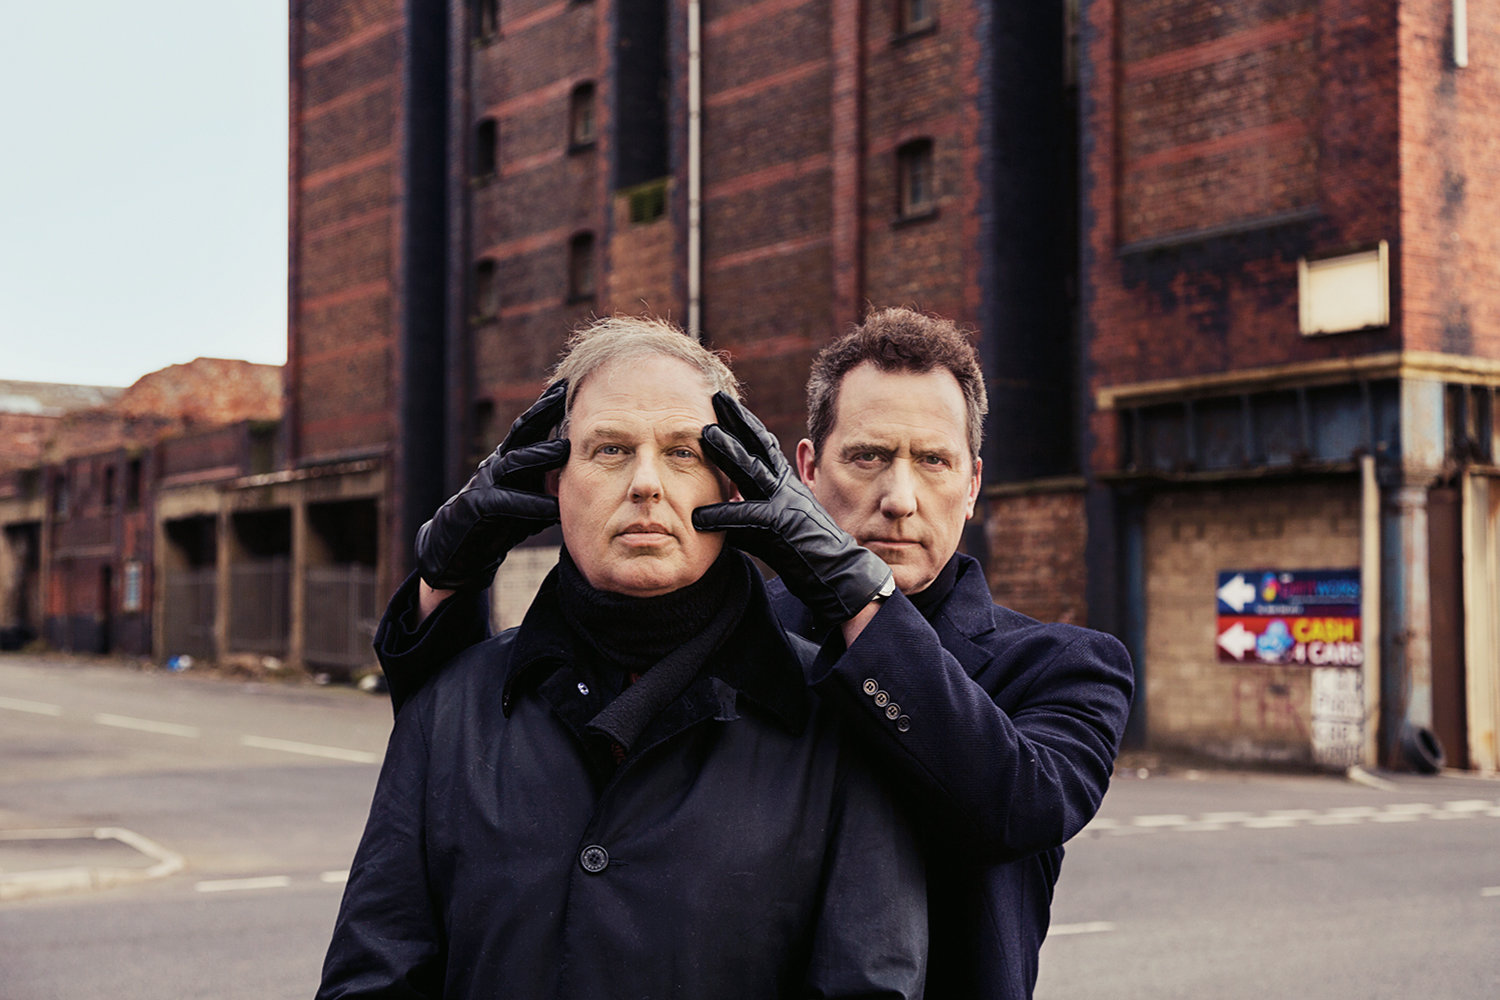 OMD to play in Bristol at the Colston Hall